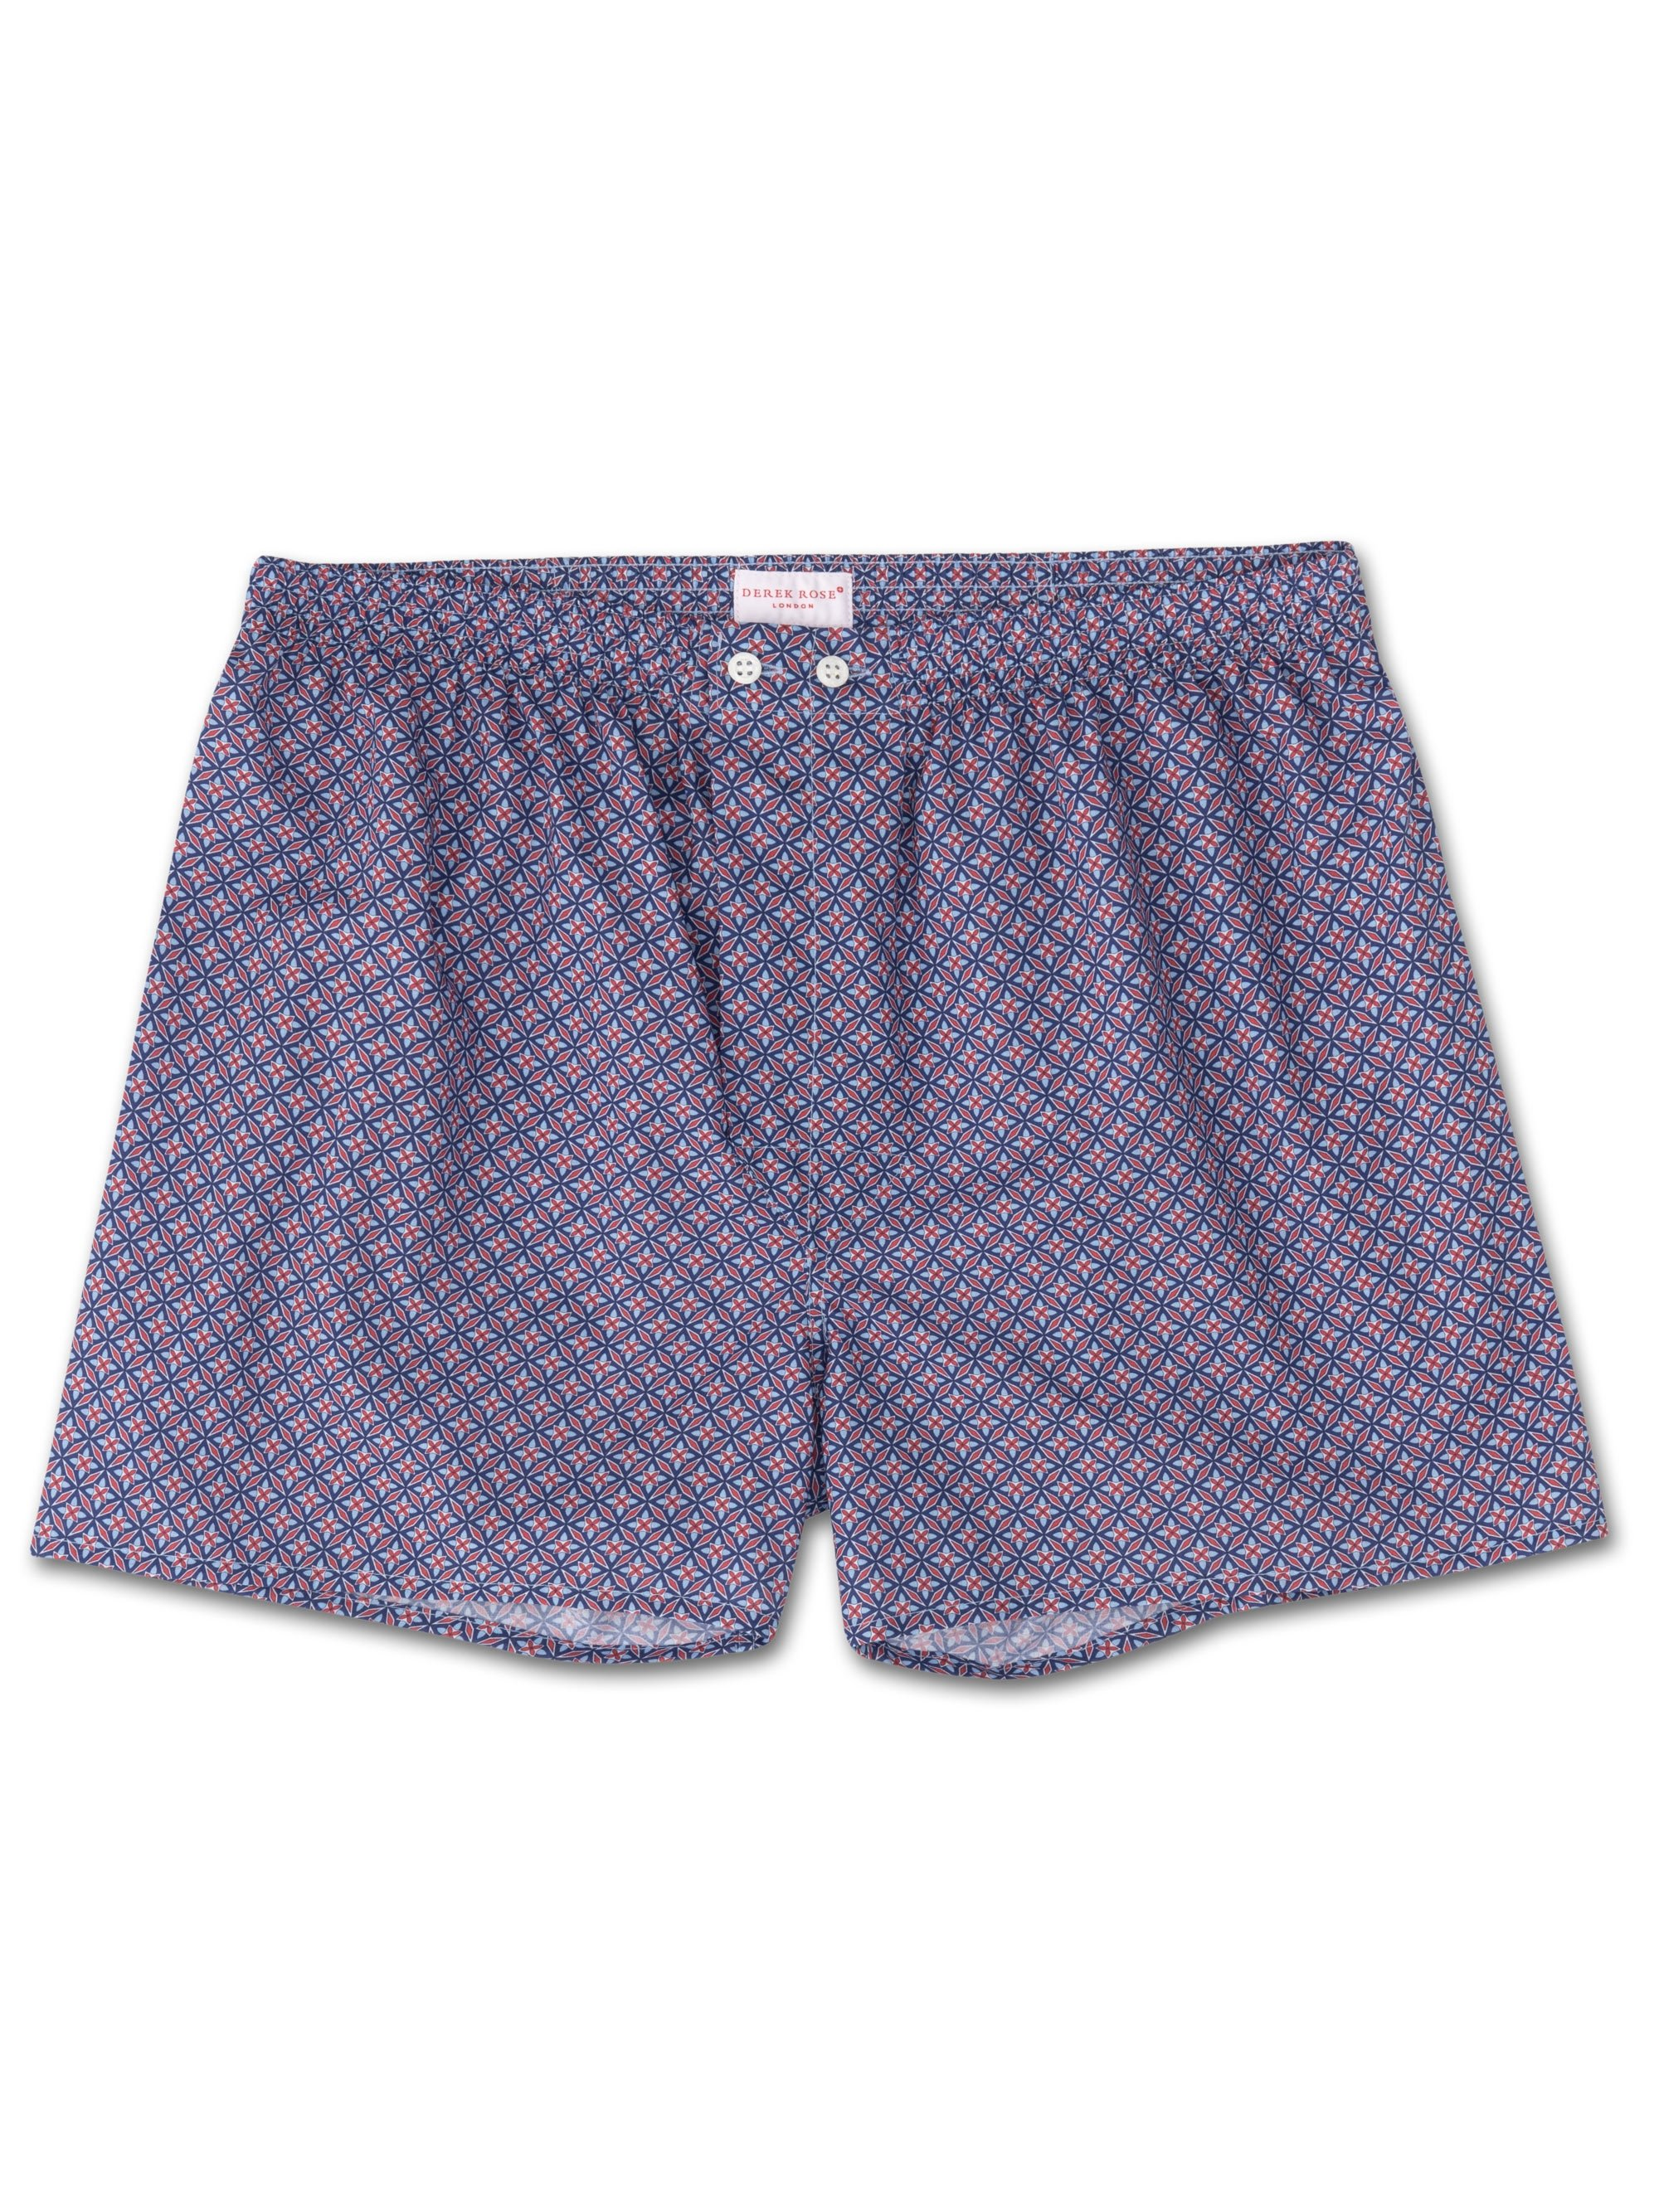 Men's Classic Fit Boxer Shorts Ledbury 21 Cotton Batiste Red